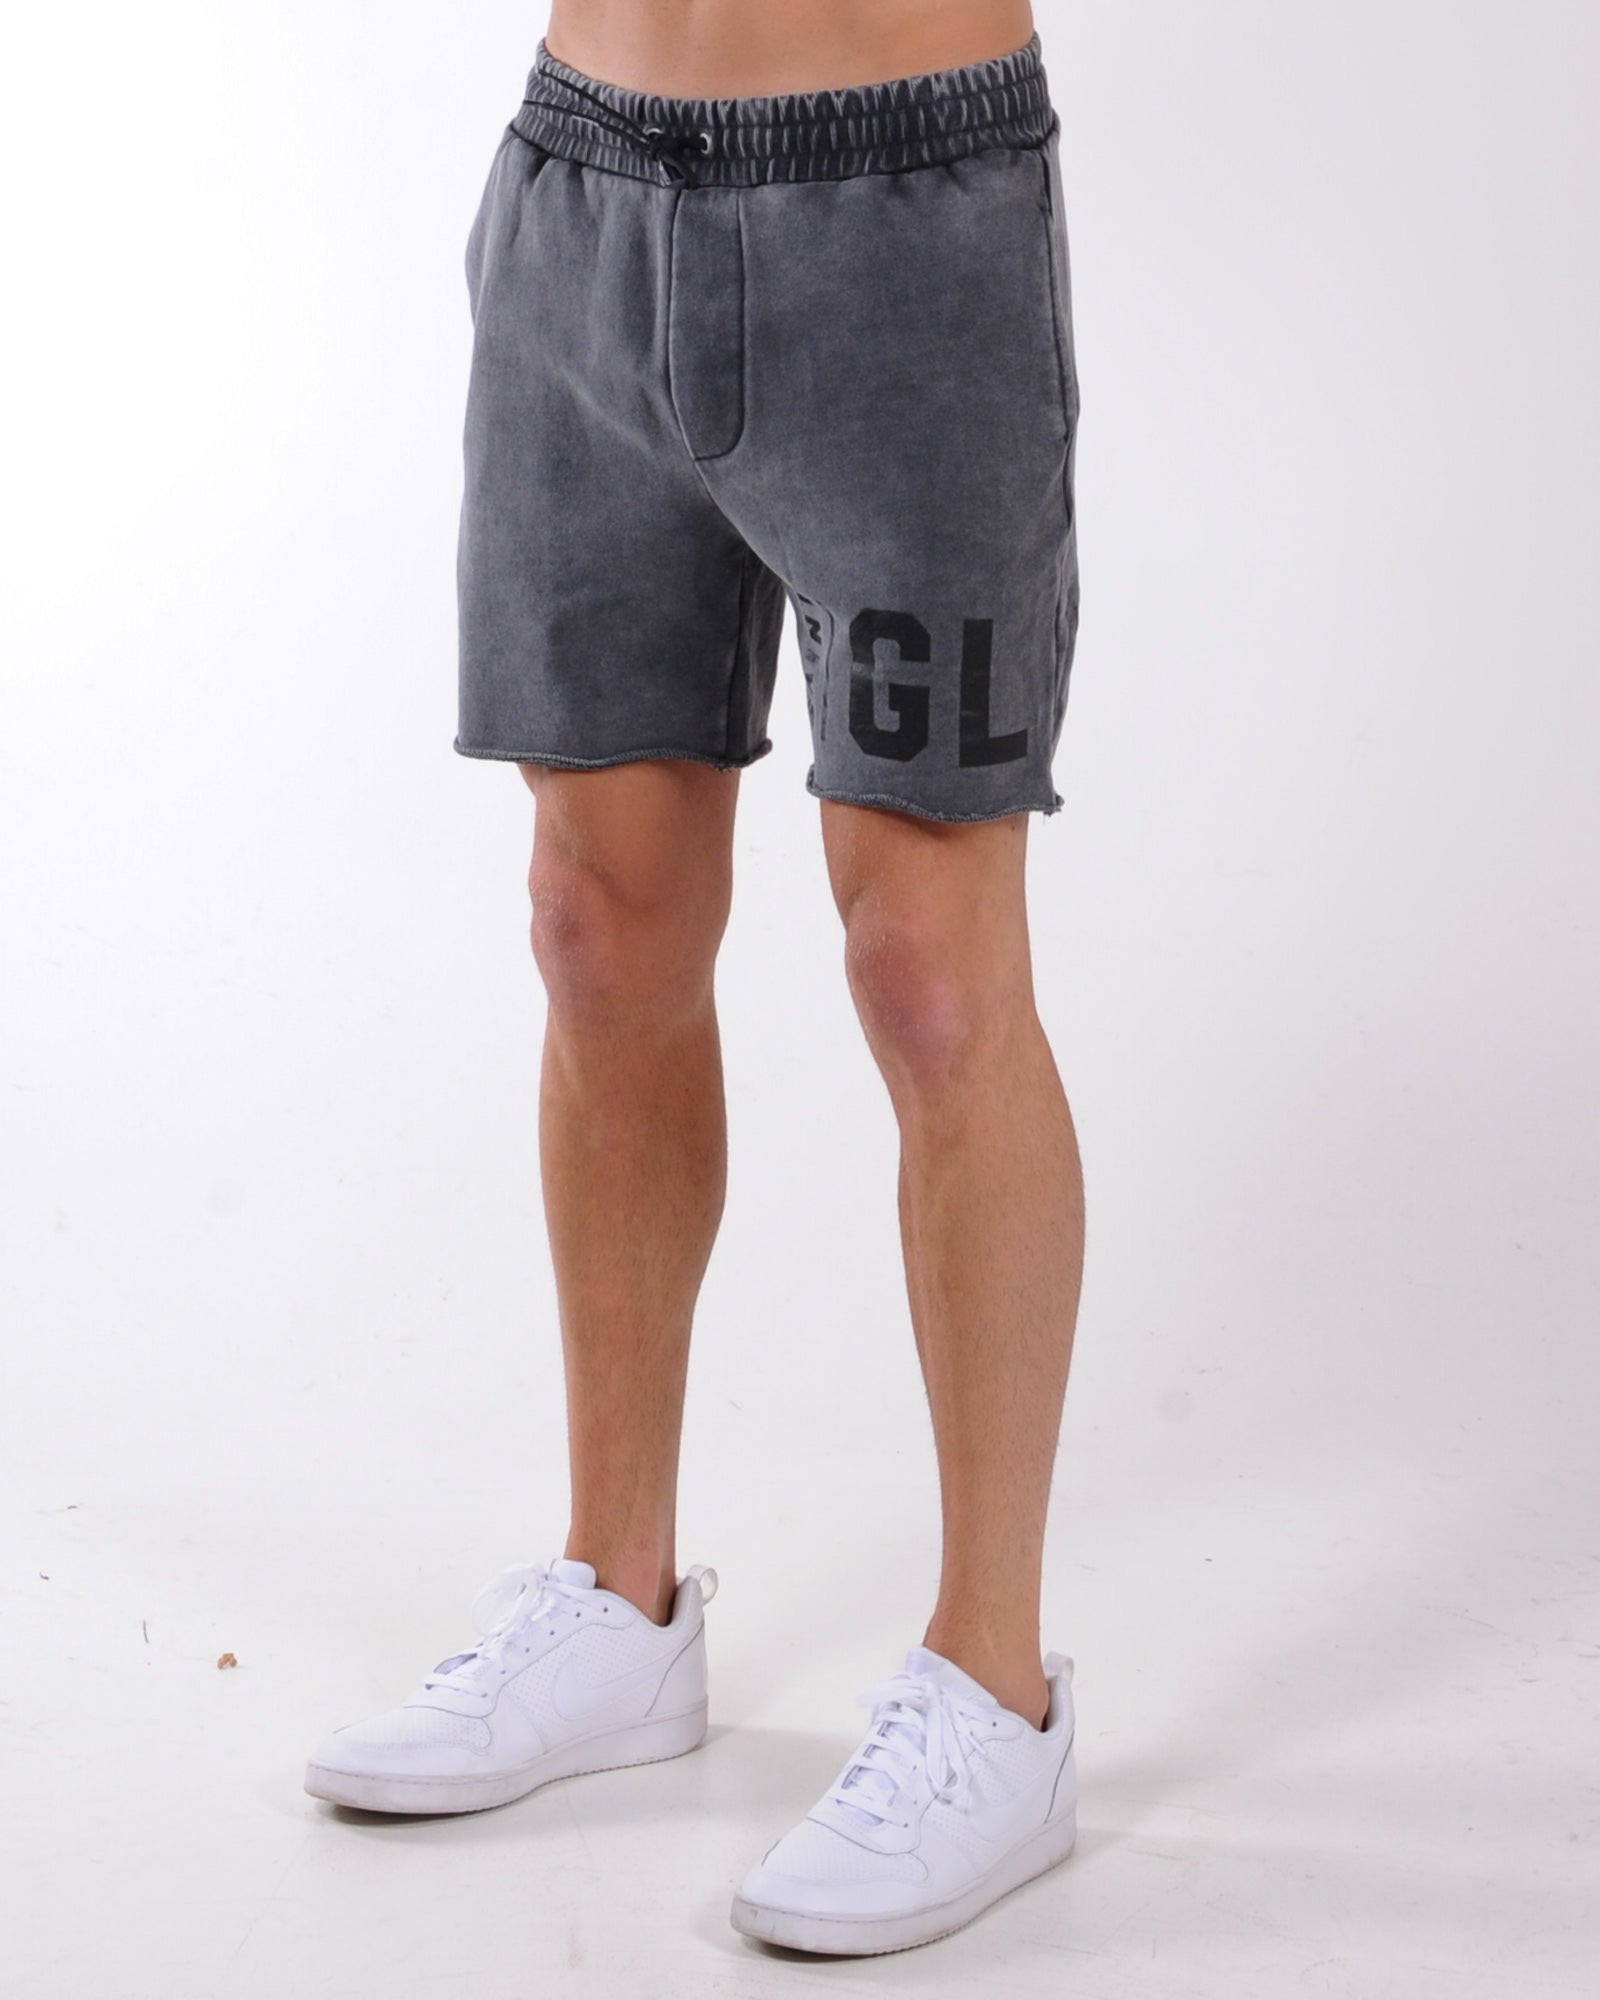 St Goliath Legion Short - Washed Black